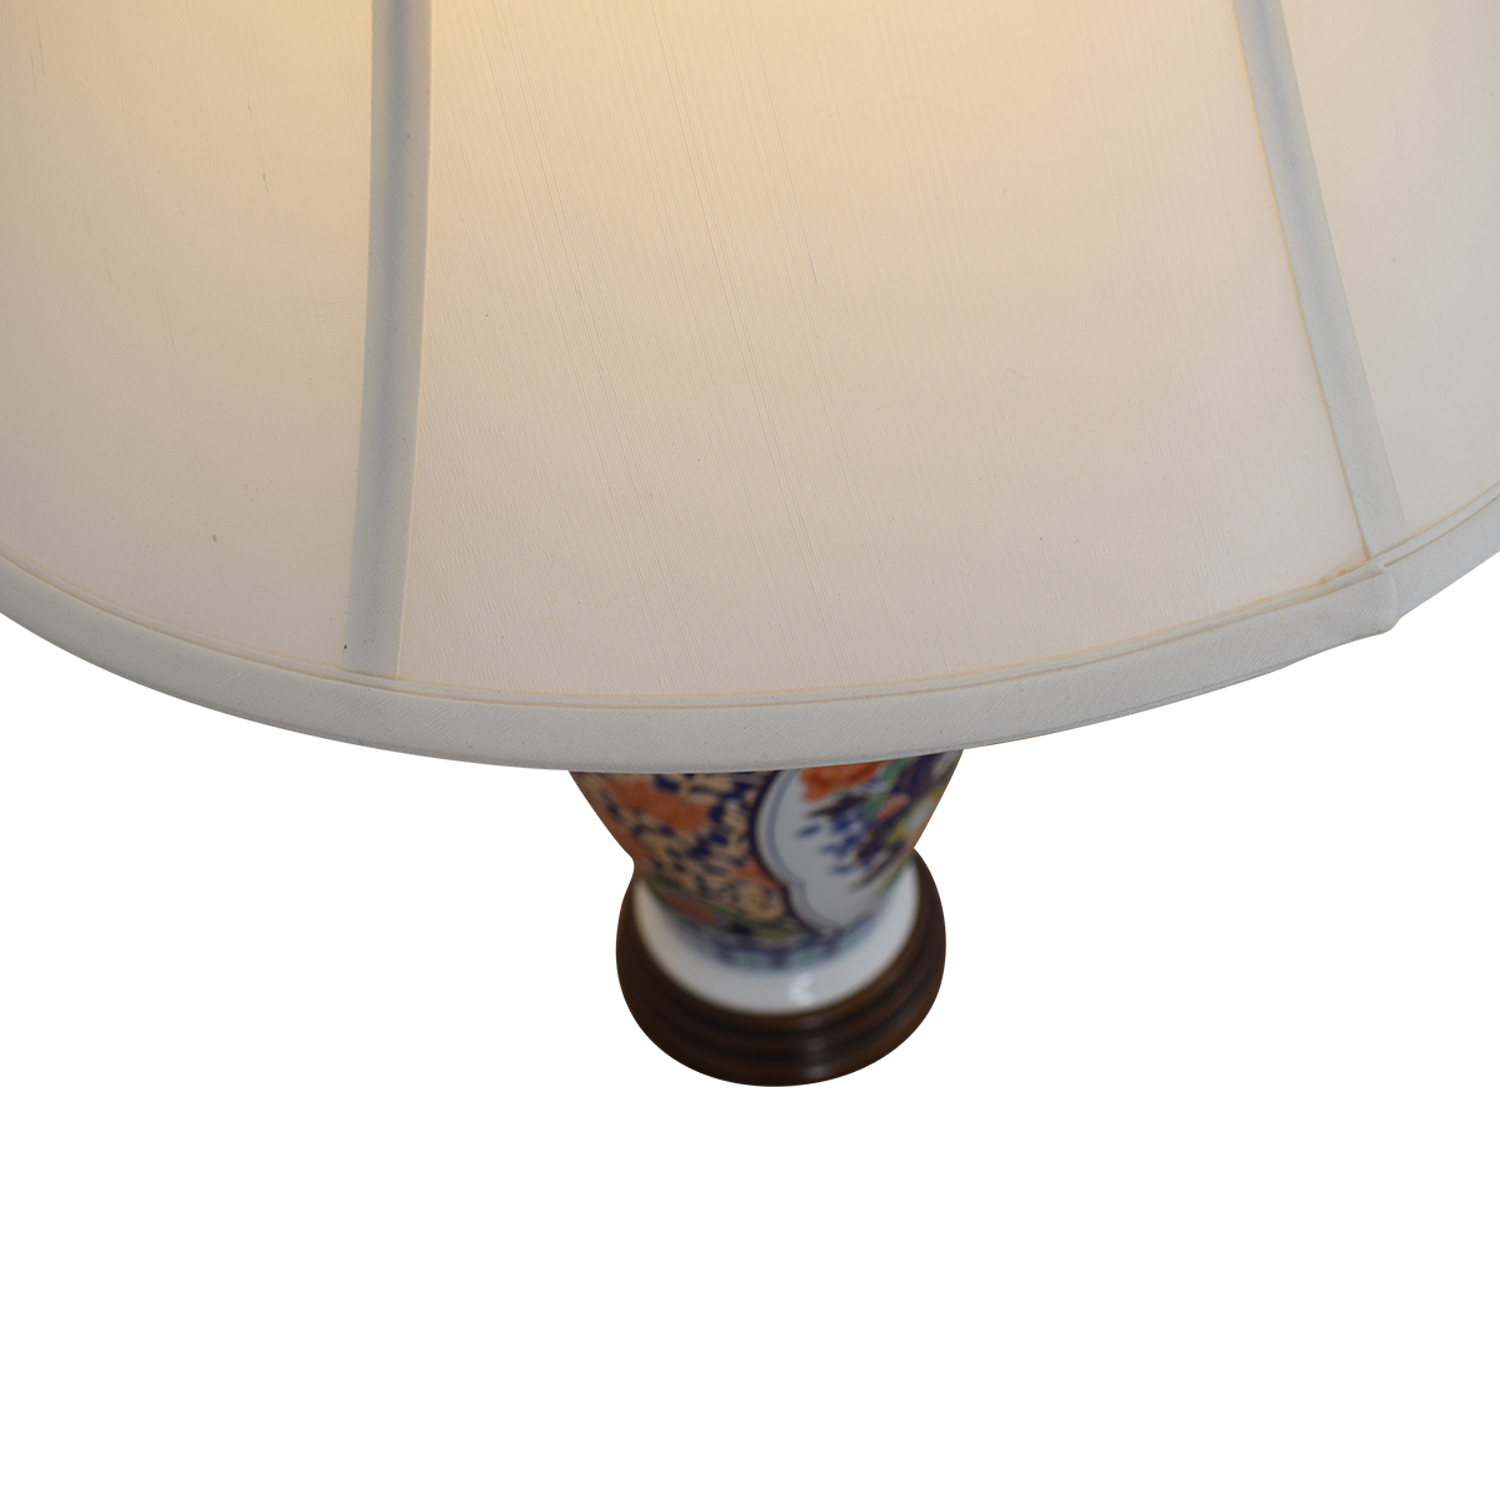 Japanese Imari Porcelain Table Lamp